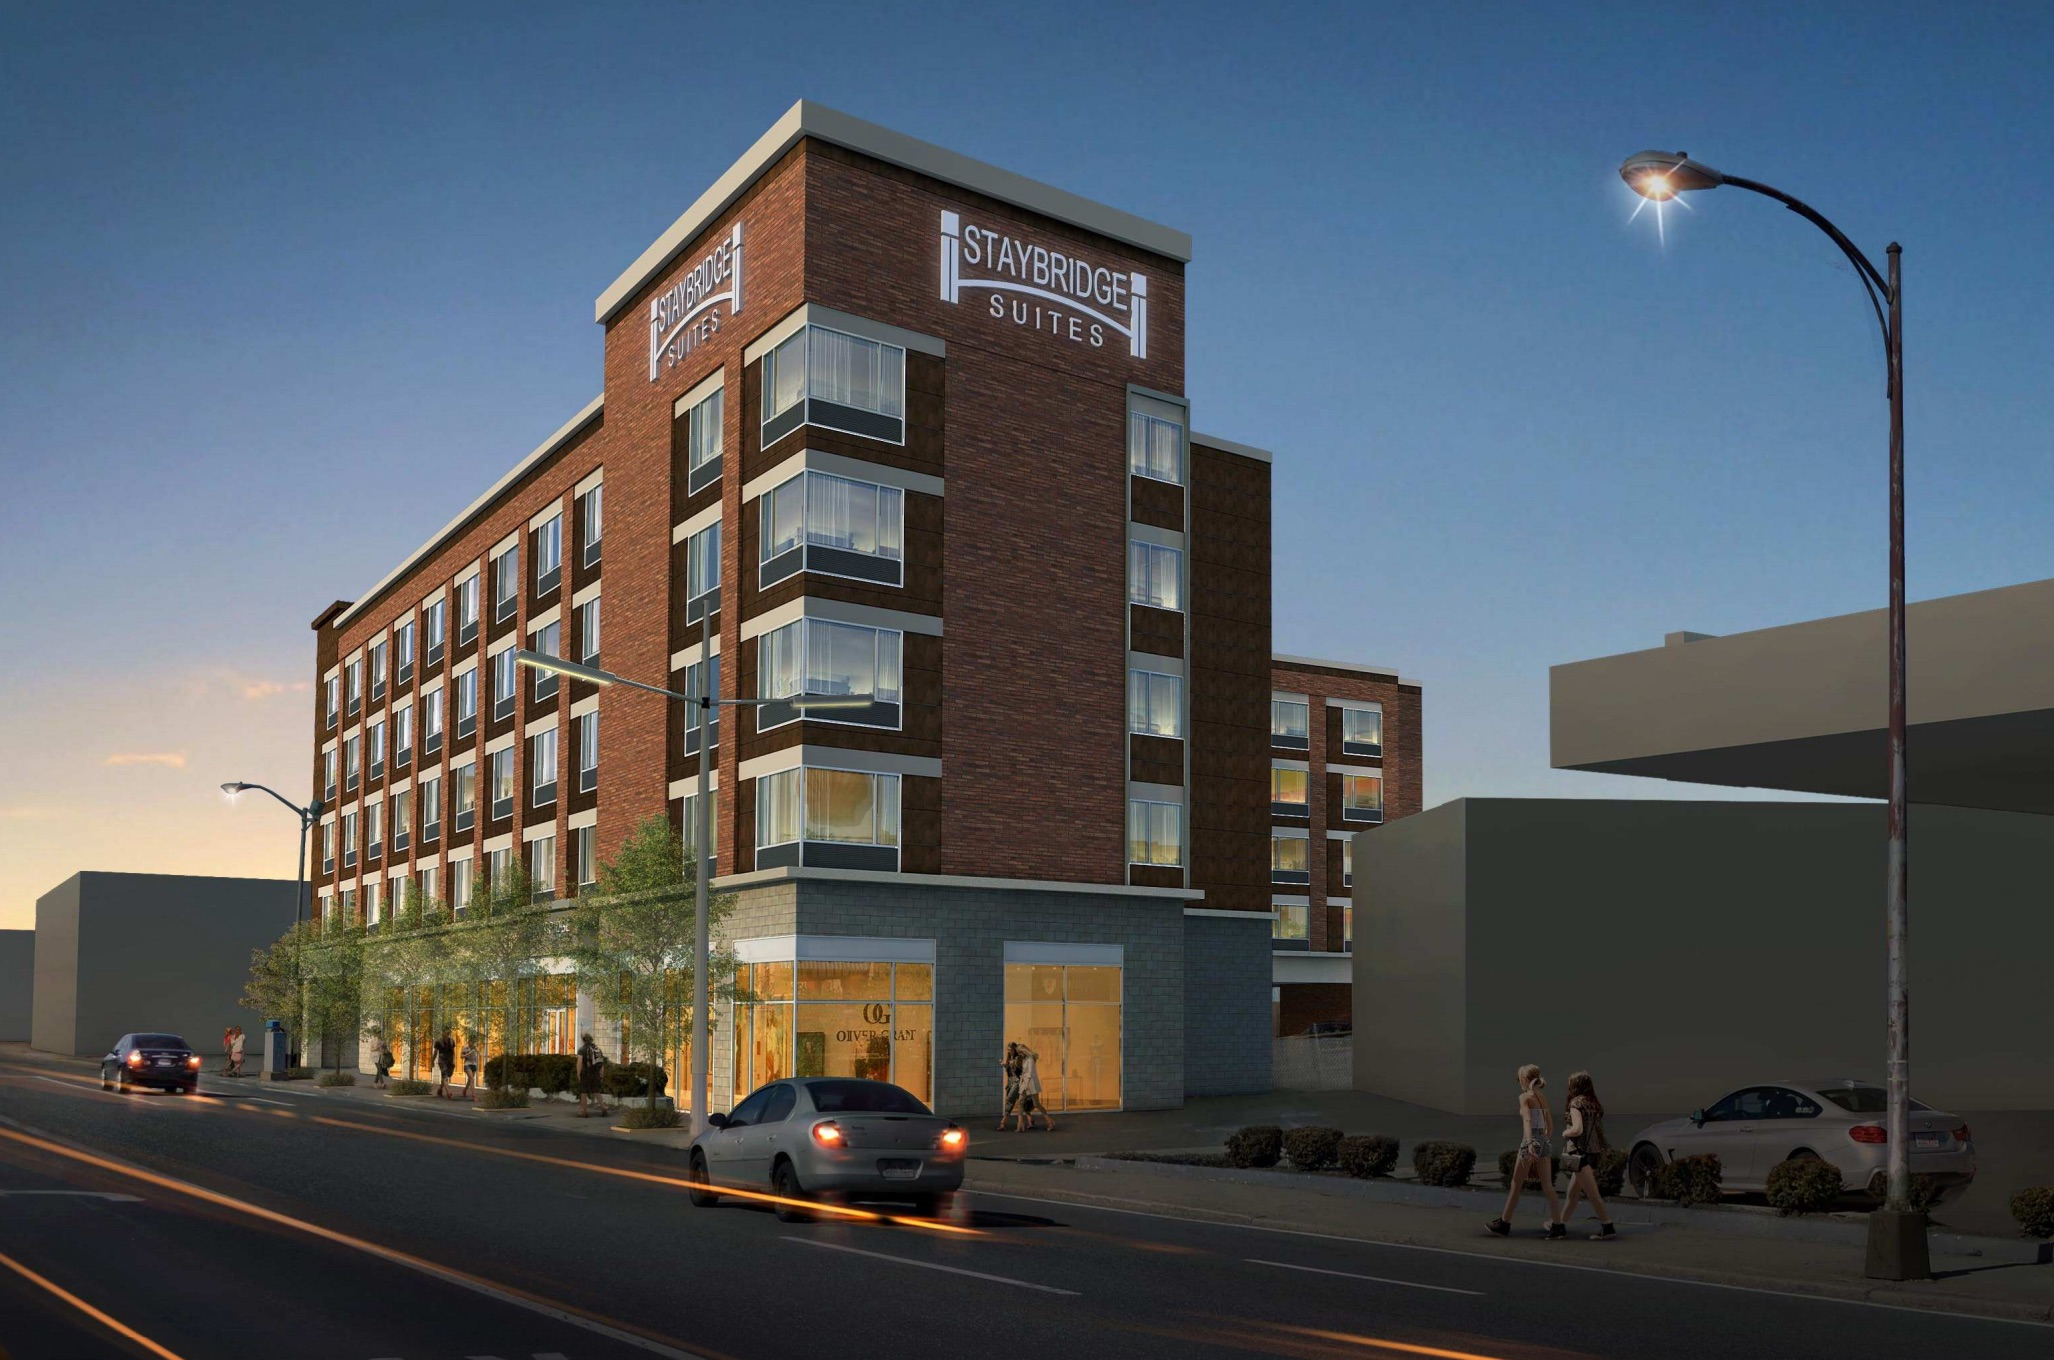 Staybridge suites cambridge somerville extended stay hotel lechmere mbta green line